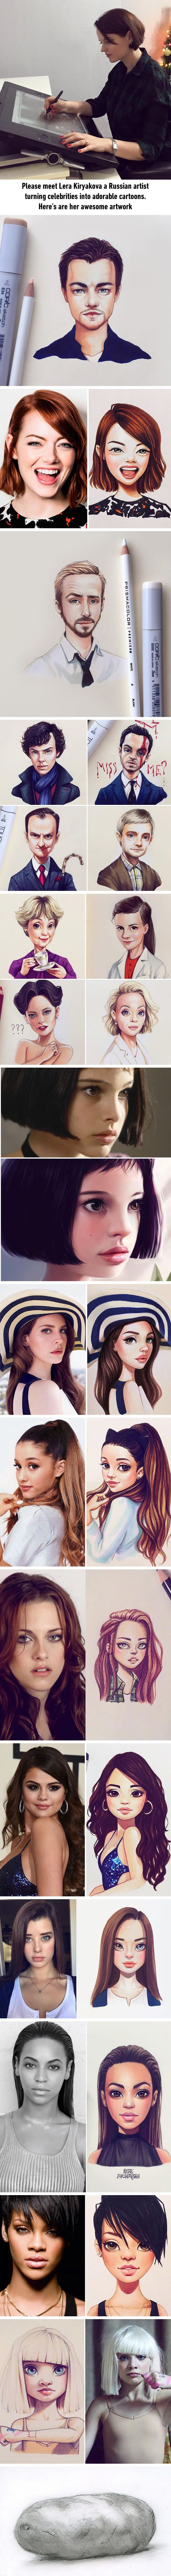 Russian artist turns celebrities into awesome cartoon characters